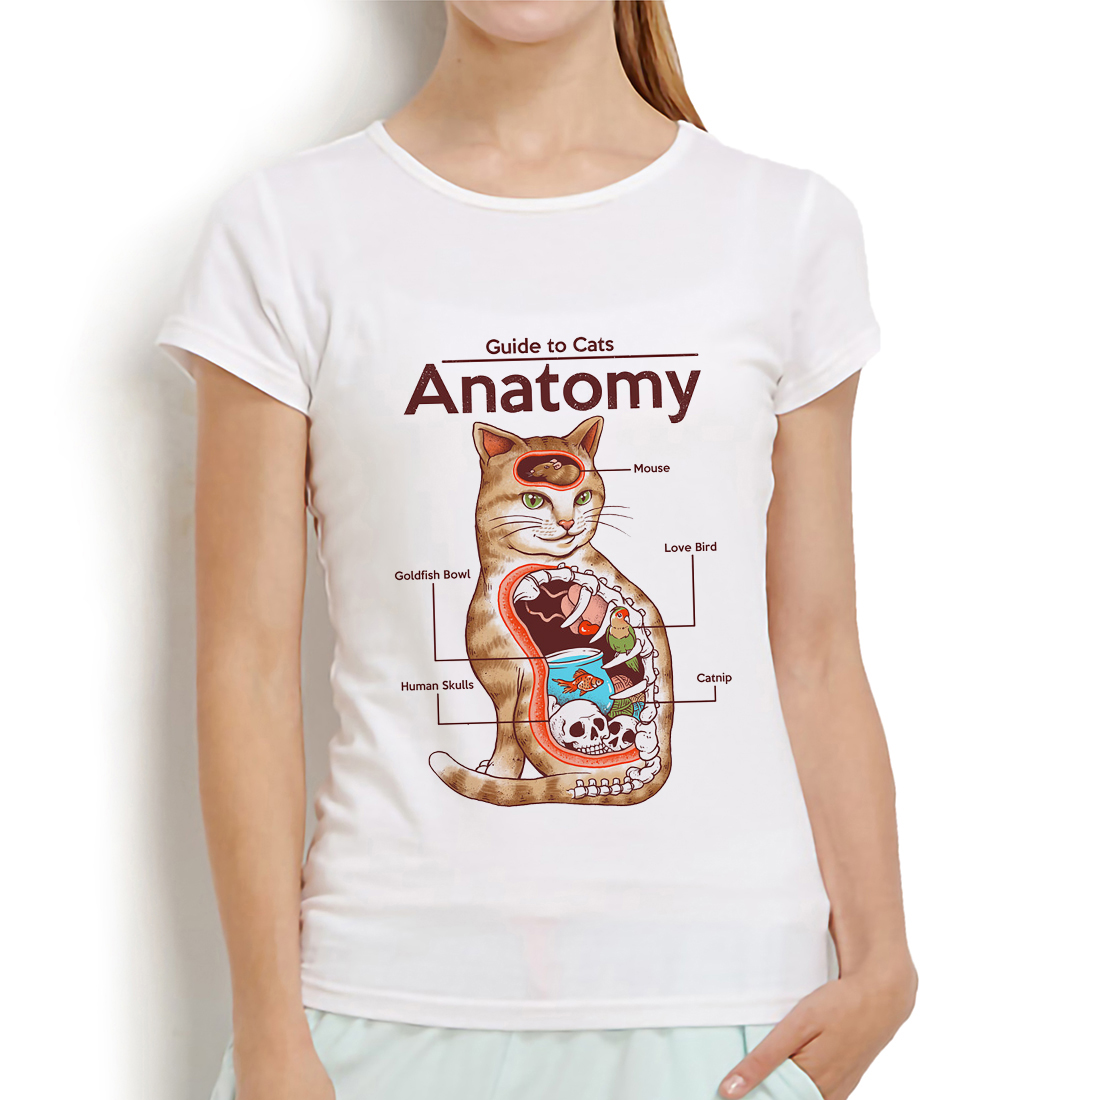 Anatomy of a Cat <font><b>funny</b></font> <font><b>t</b></font> <font><b>shirt</b></font> <font><b>women</b></font> summer new white casual short sleeve tshirt femme kawaii meow streetwear <font><b>t</b></font>-<font><b>shirt</b></font> image